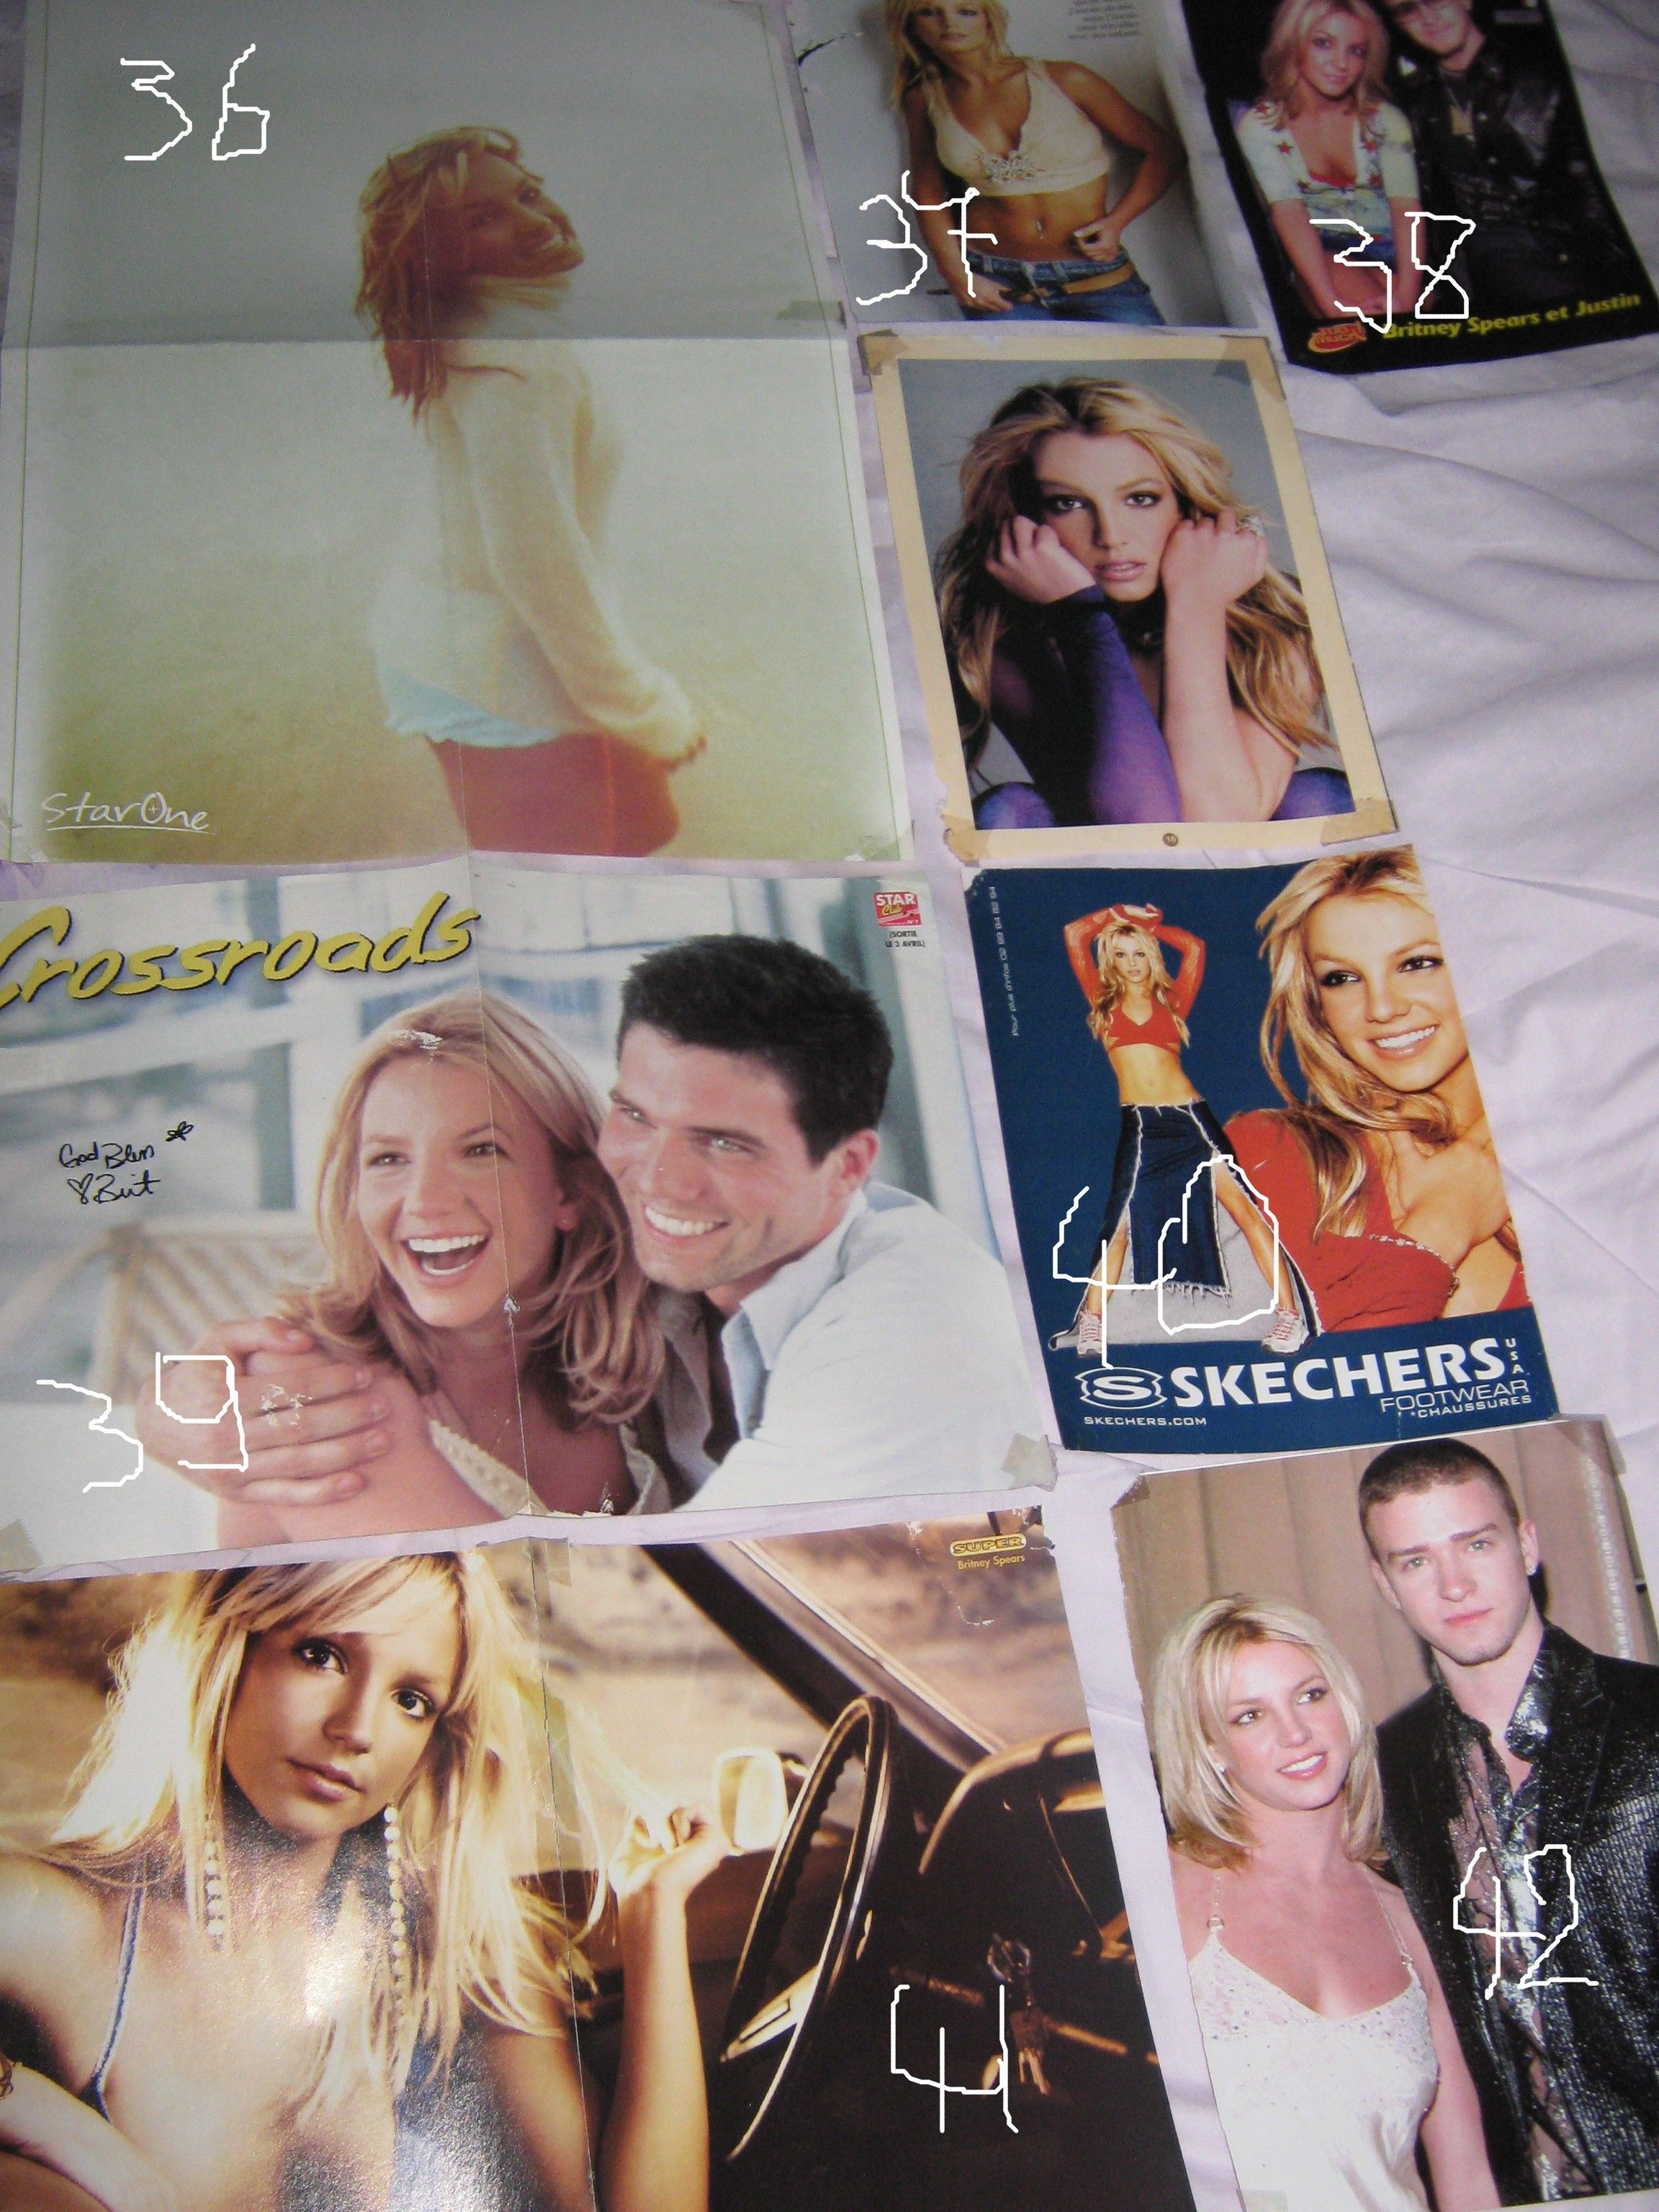 Britney posters Spears posters Spears Vente posters Vente Britney Vente QsrdoxhtCB